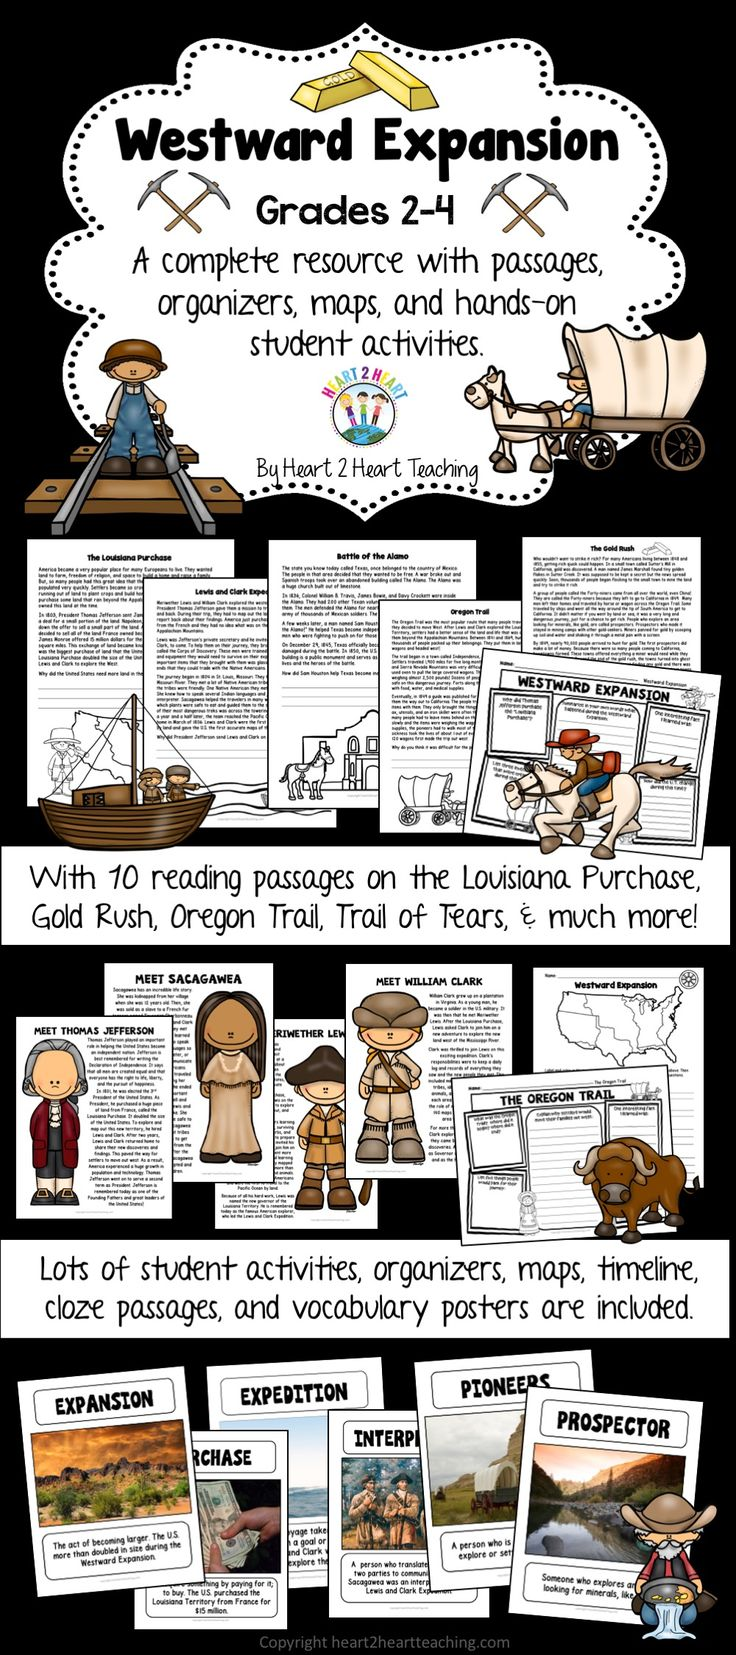 Your students will love learning about the Westward Expansion with this creative activity pack with information about: *The Westward Expansion *The Louisiana Purchase *The Alamo *The Pony Express *The Oregon Trail *The Gold Rush *Westward Expansion and the Native Americans (Trail of Tears) *Lewis and Clark Expedition